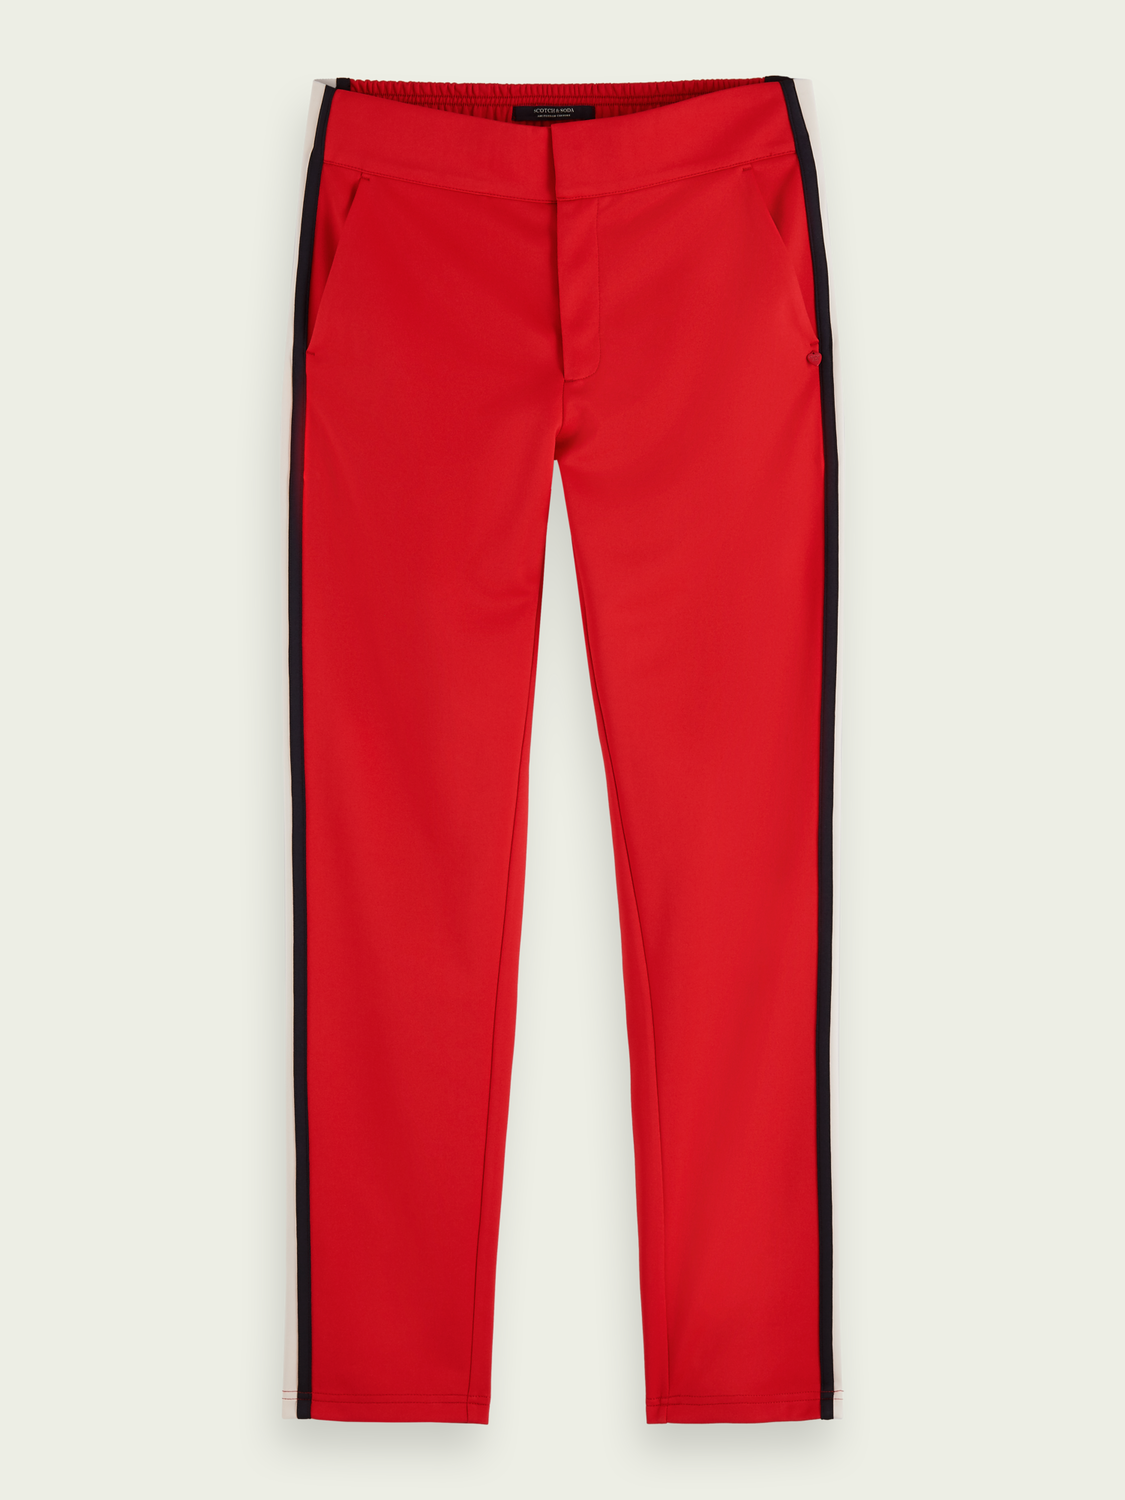 Women Sporty mid-rise tailored sweatpants